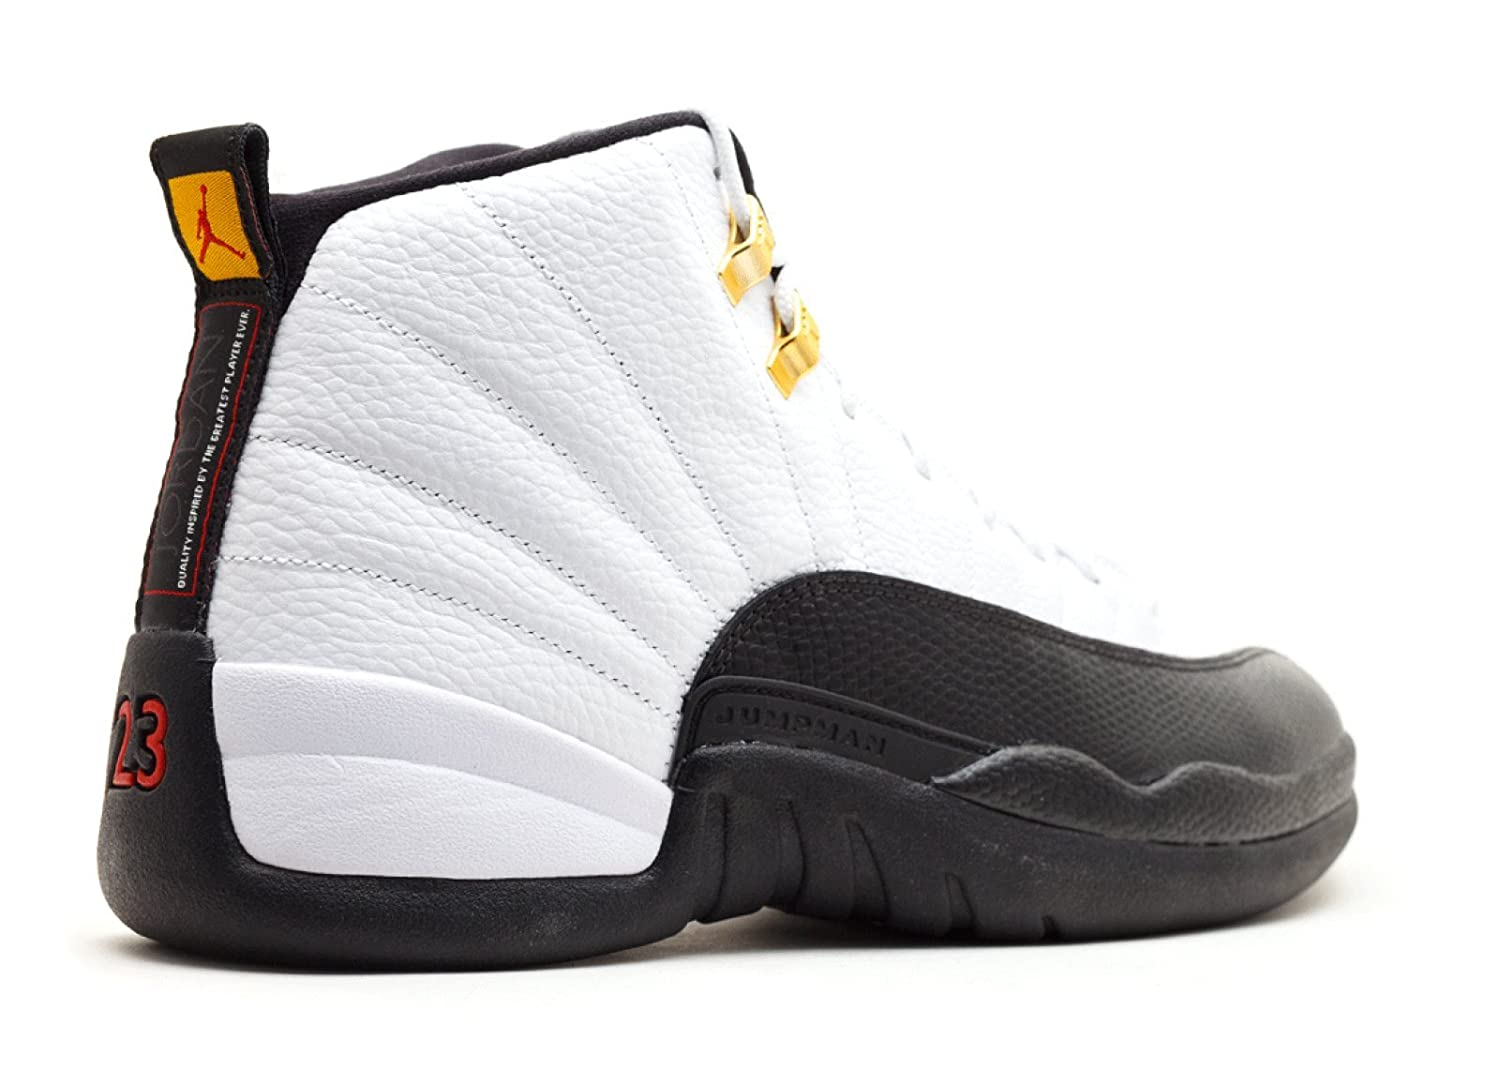 best service eb5bd 7251f Amazon.com   Jordan Air 12 Retro Taxi Men s Basketball Shoes  White Black-Taxi-Varsity Red 130690-125   Basketball